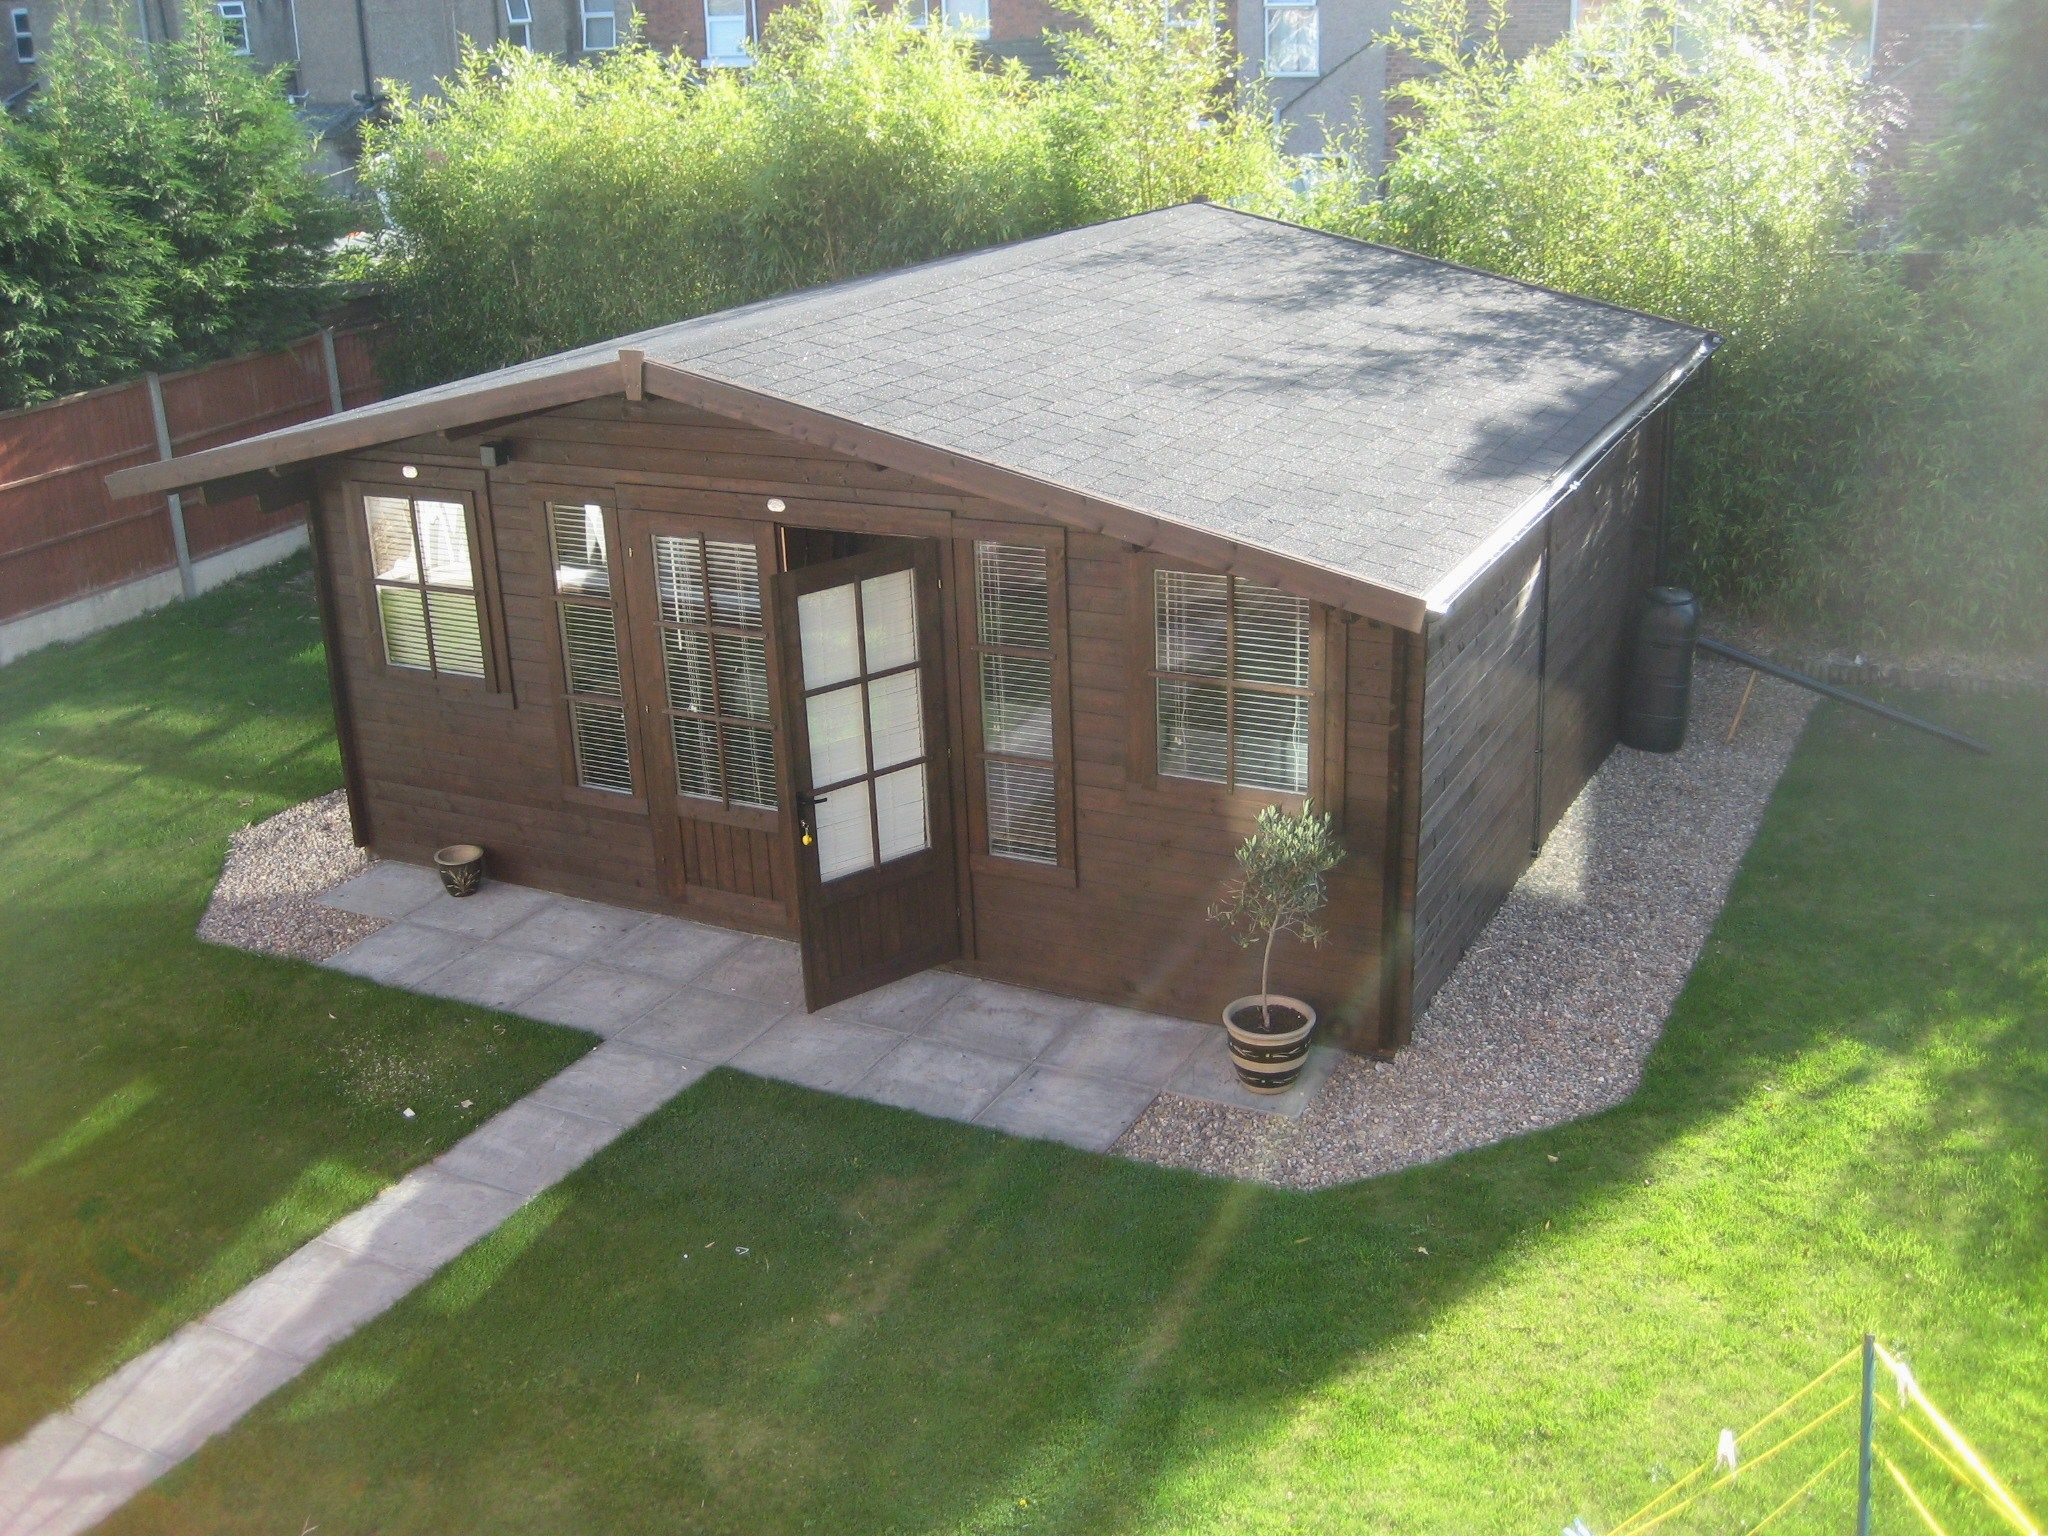 This Vanguard 500 #LogCabin is beautiful and lends itself to a variety of uses from a #GardenOffice, art studio, games room for the kids or perhaps just a place to sit and relax and entertain friends and family.    http://dunsterhouse.co.uk/log-cabins/vanguard-500   #gardenideas #shedideas